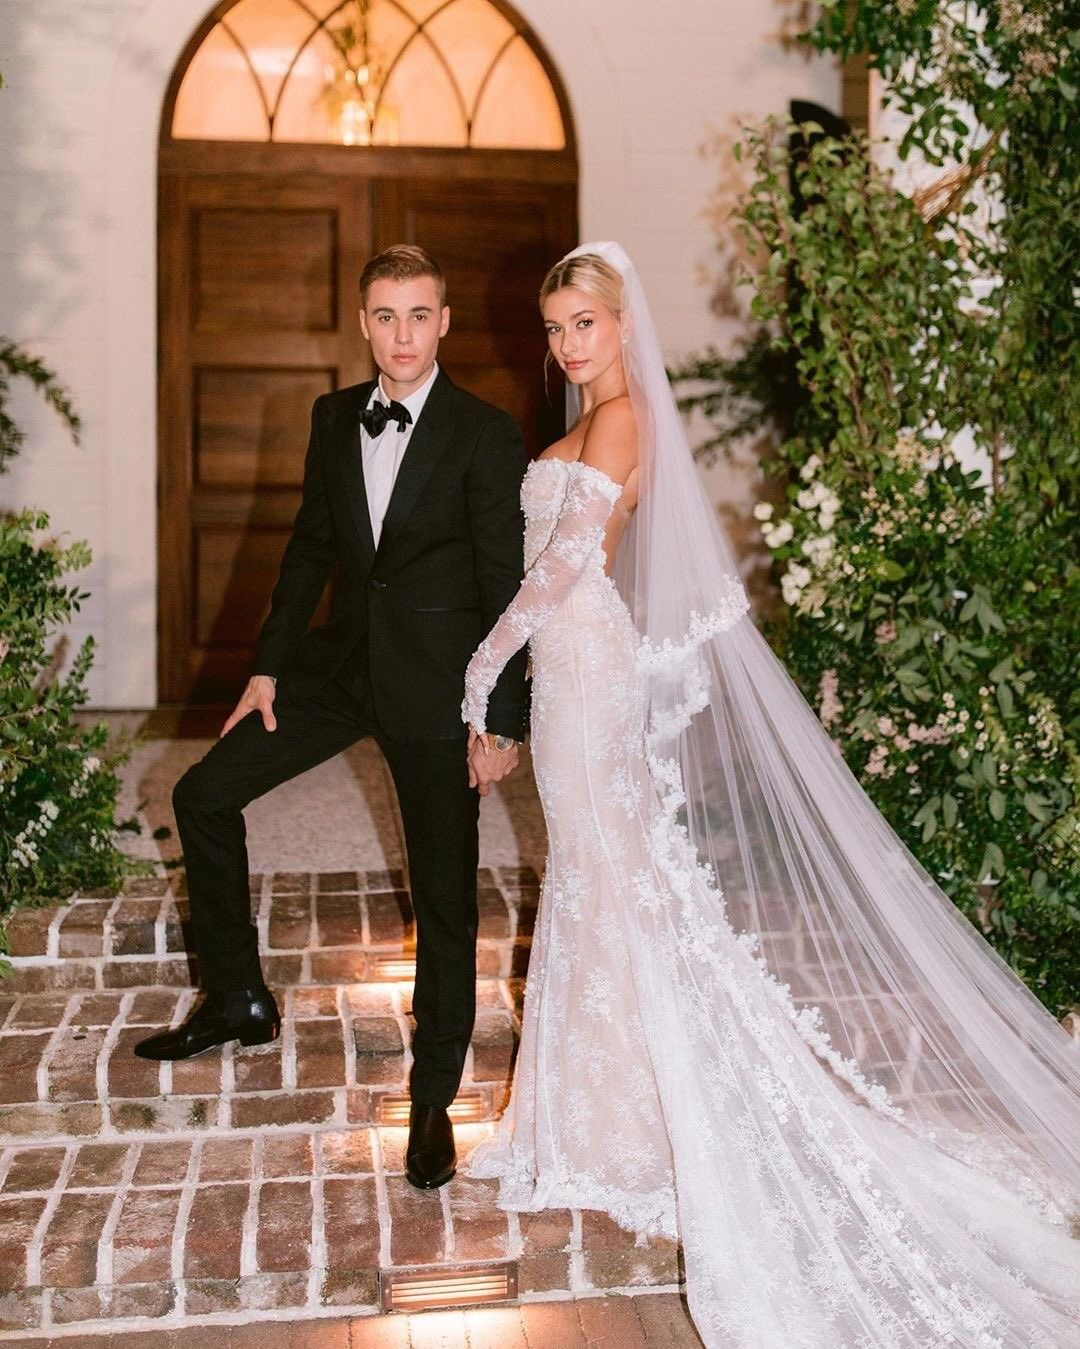 The Biebers Wedding Justin Bieber Hailey Bieber Wedding Dresses Celebrity Wedding Gowns Hailey Bieber Wedding